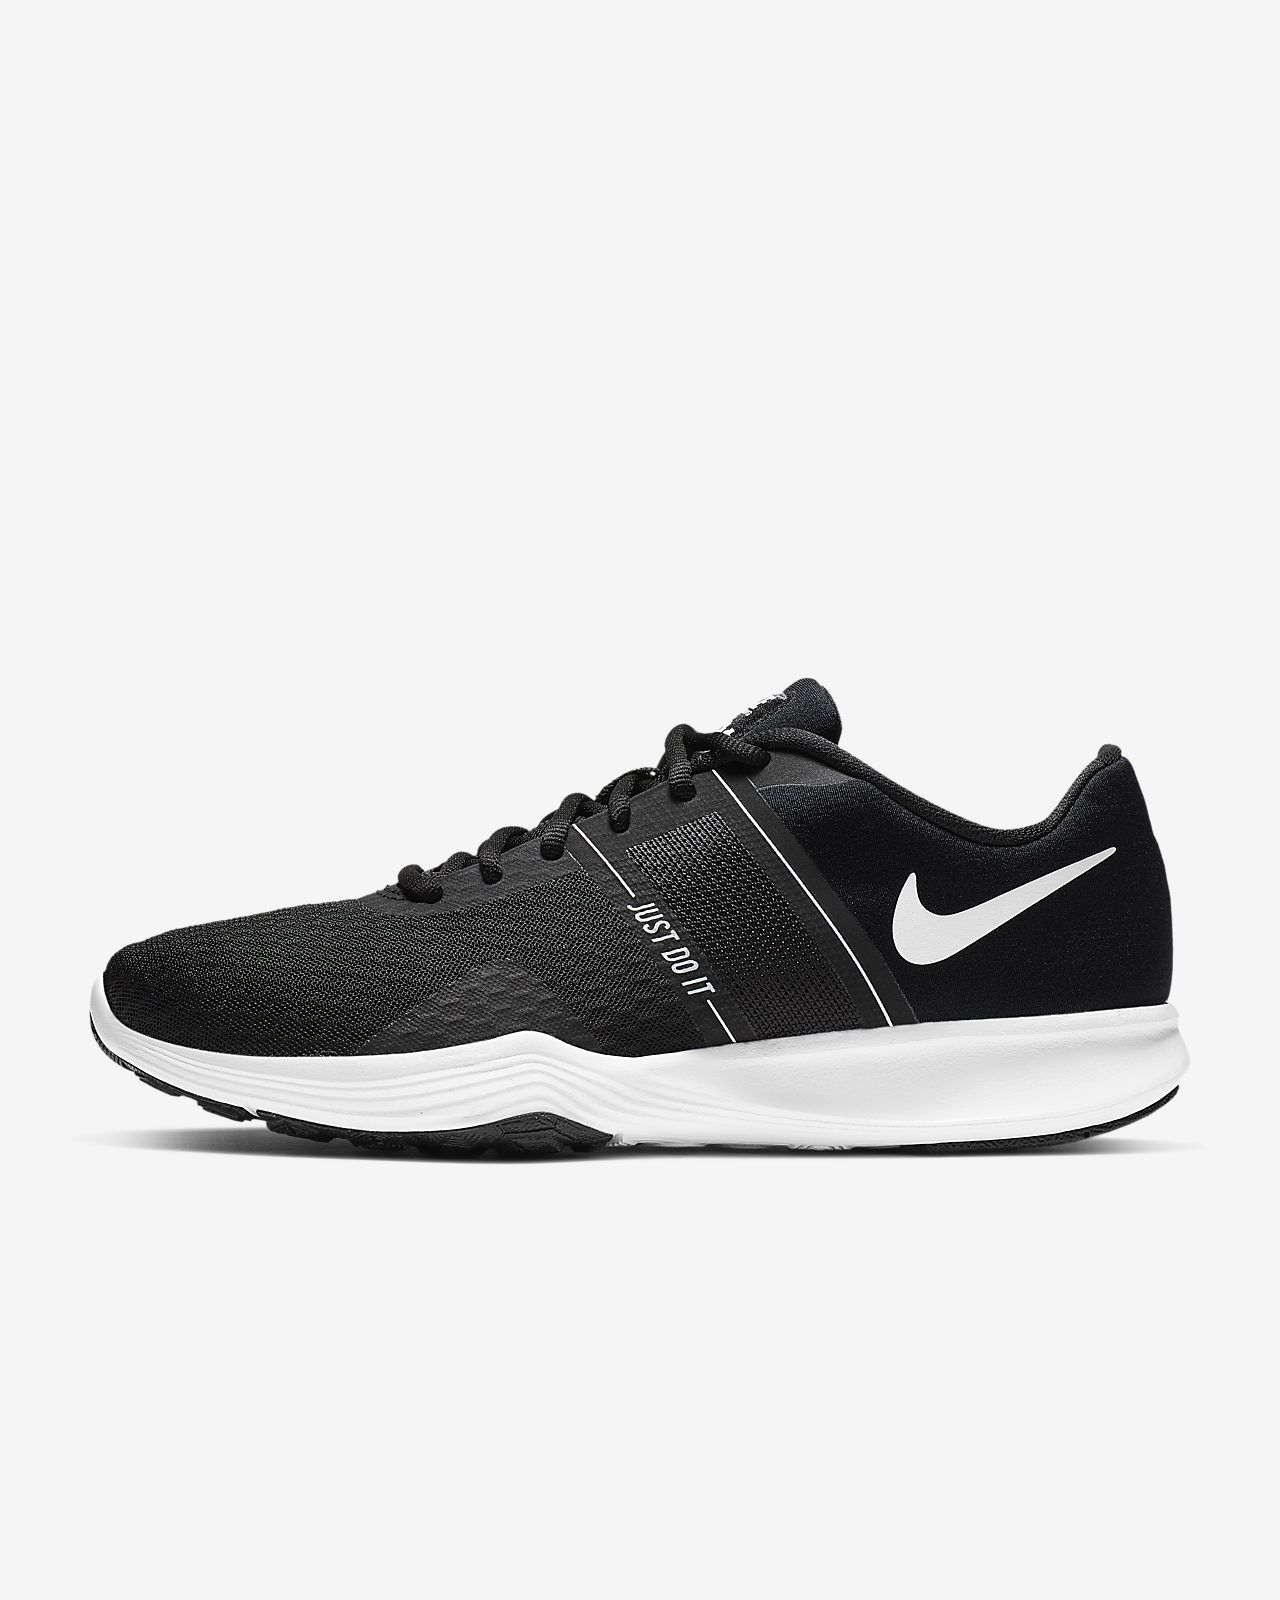 Nike City Training Scarpa Trainer Da DonnaIt 2 kiTPOuXZ